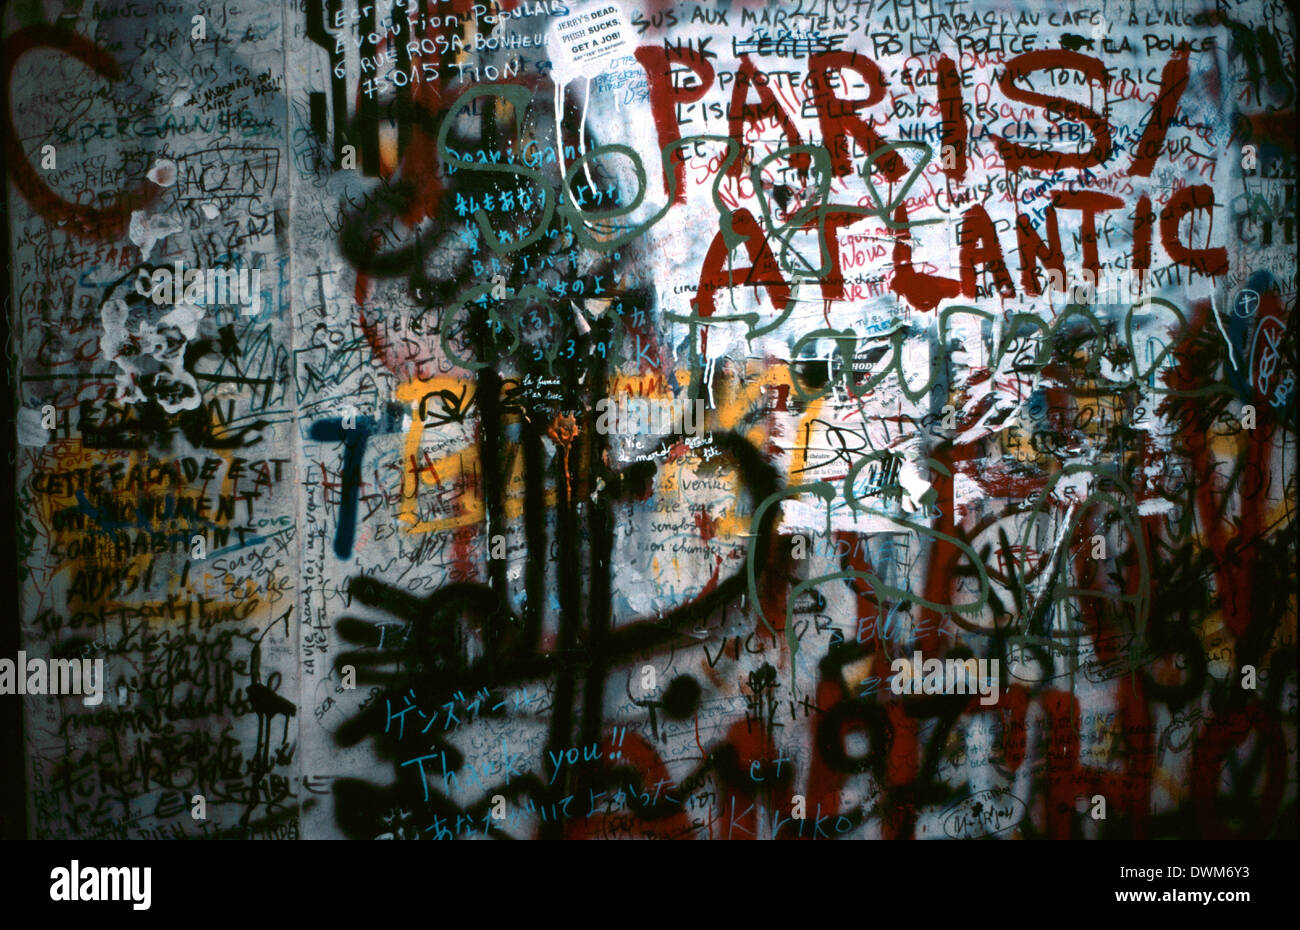 PARIS, FRANCE. Graffitti messages on the wall and door outside the Serge Gainsbourg residence.  Photo:Jonathan Eastland/AJAX - Stock Image